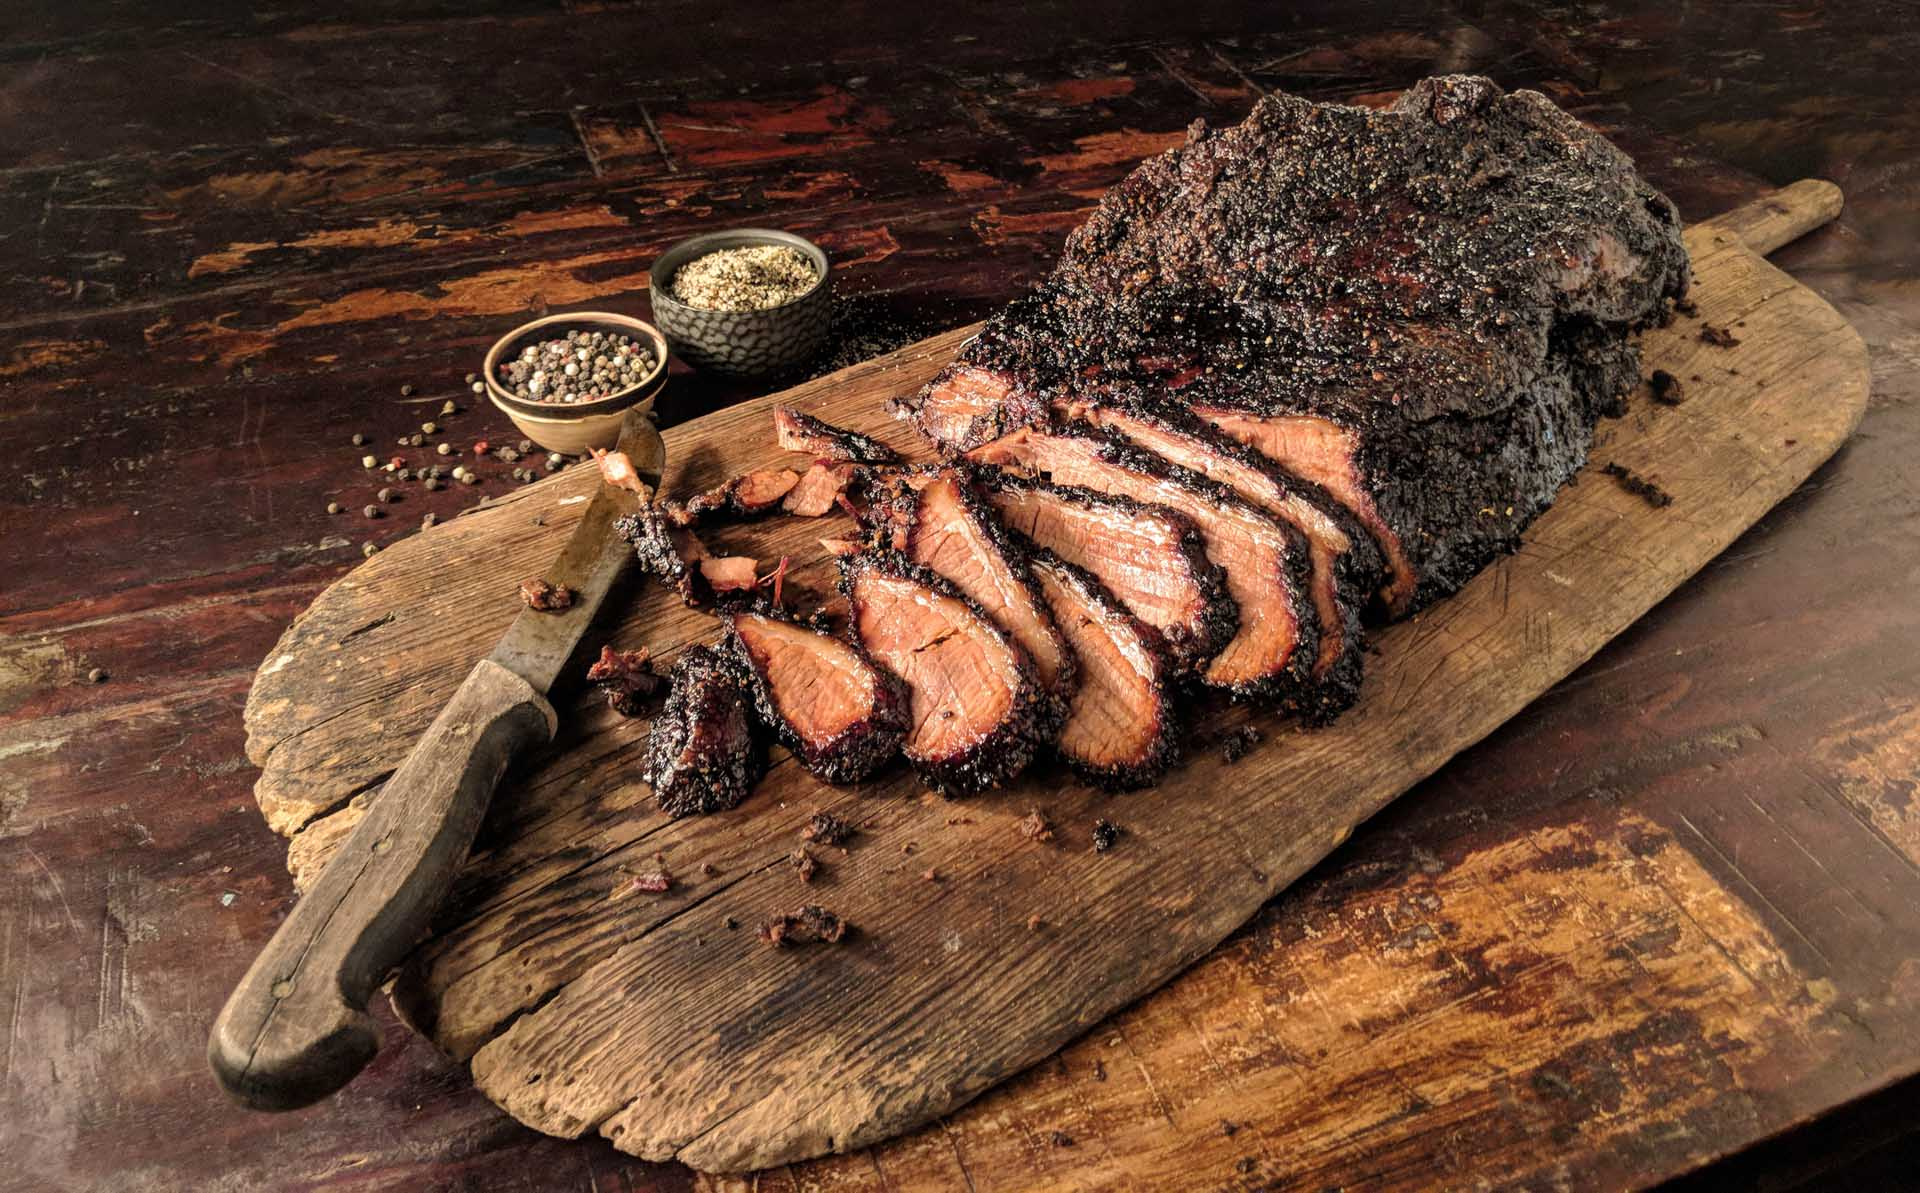 Global Franchise: Dickey's Barbecue Pit pens first South American expansion deal